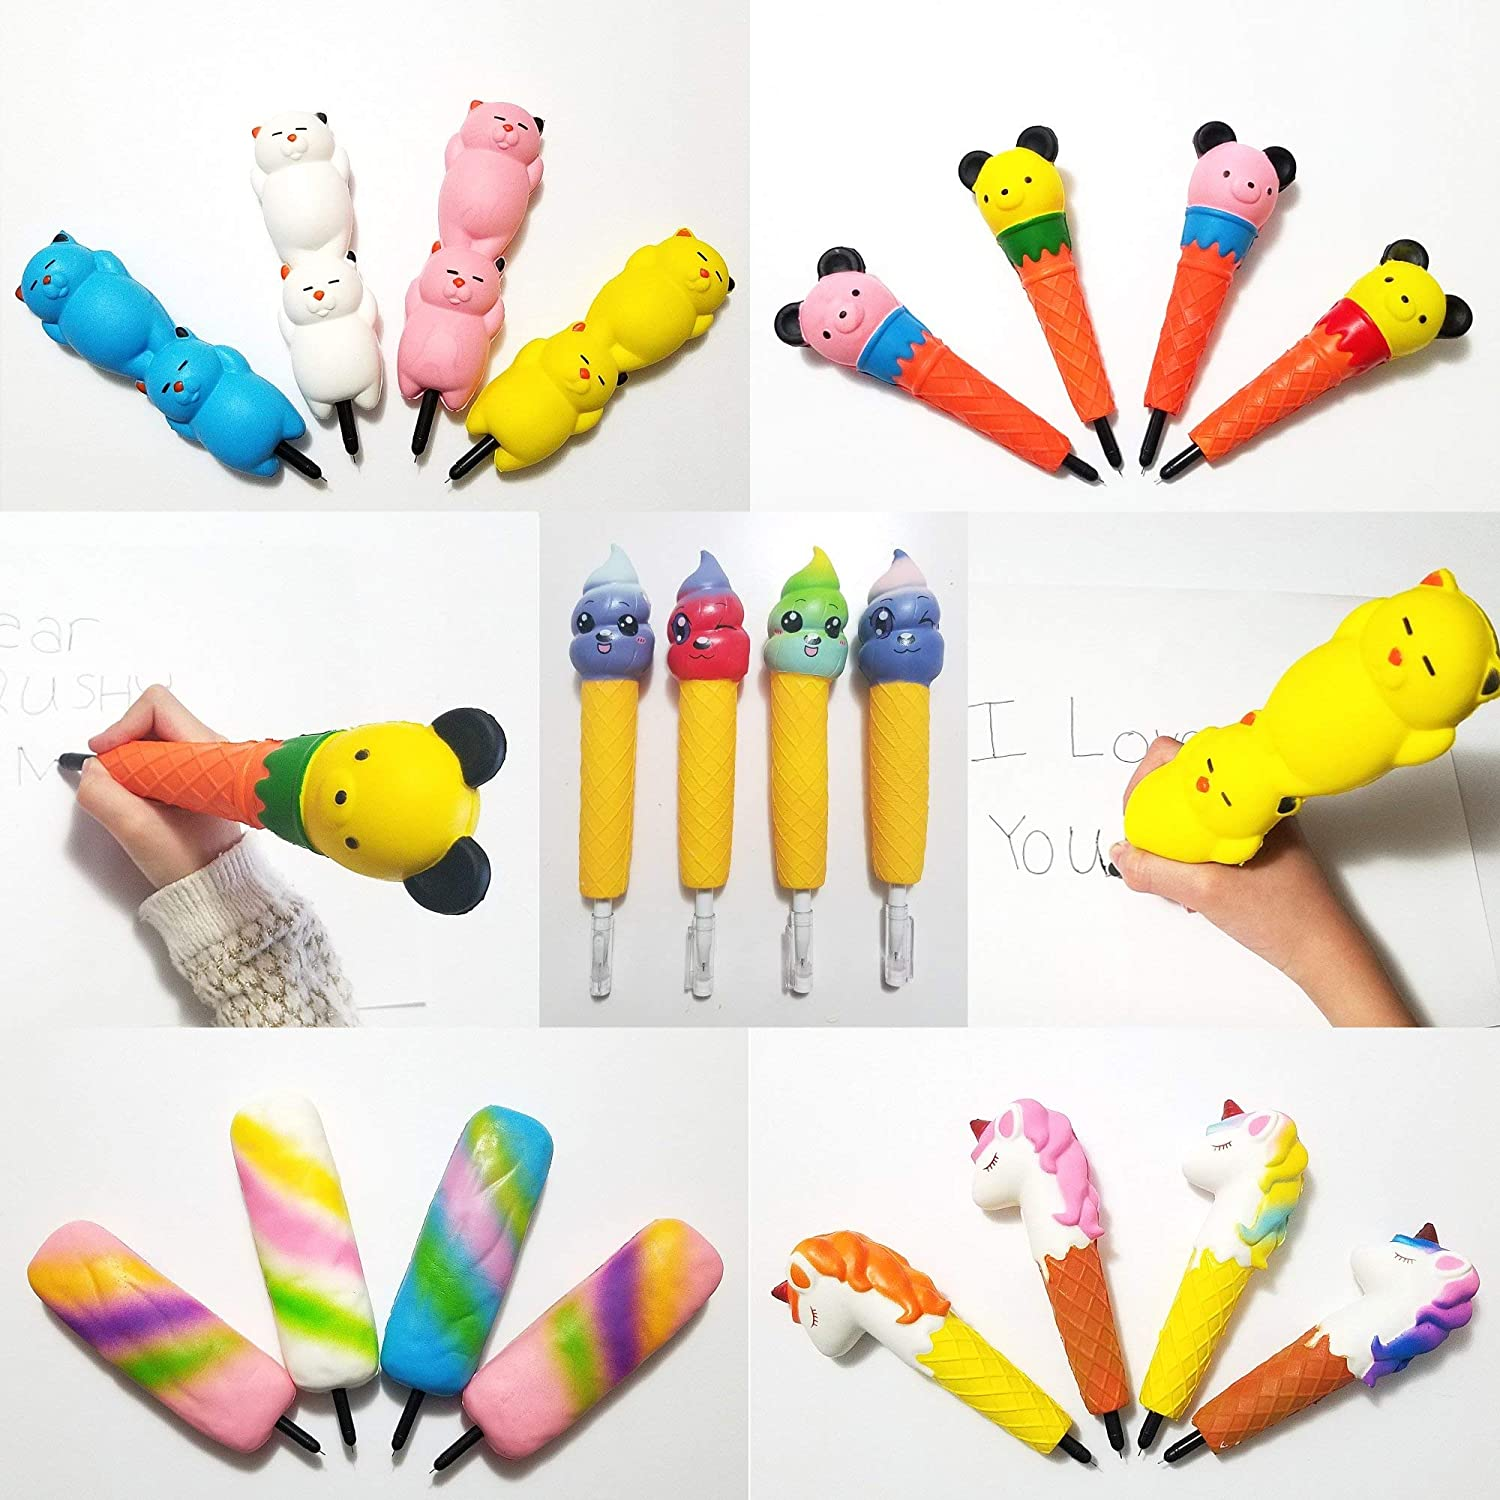 Unicorn/Cat/Ice Cream/Bear/Rainbow Popsicle Squishy Pens/Pencil Grips Toppers Holders Slow Rising Scented Squishies Kids Party Favors/Classroom/Stress Toys/Birthday/Gift (1 Each Random Color 5-Pack)